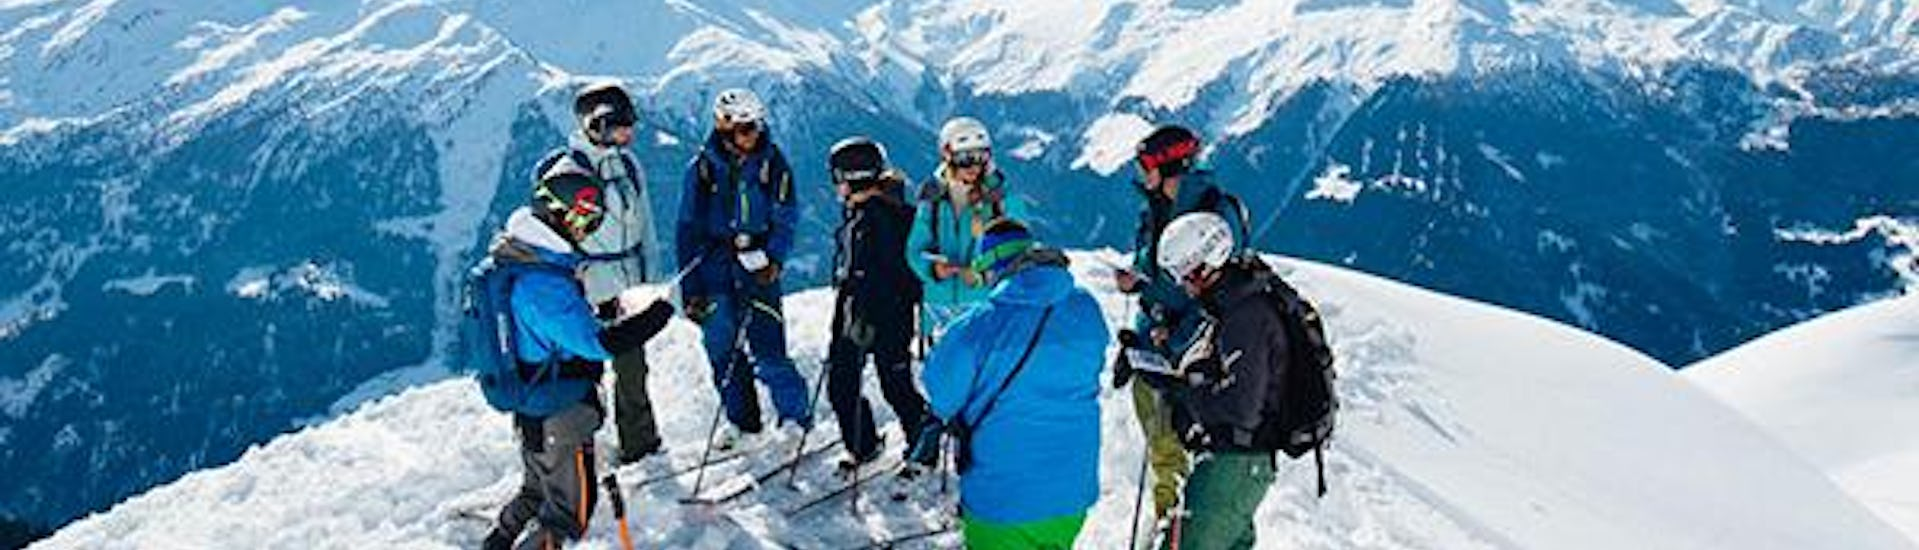 Freeriding Ski Private - All Levels